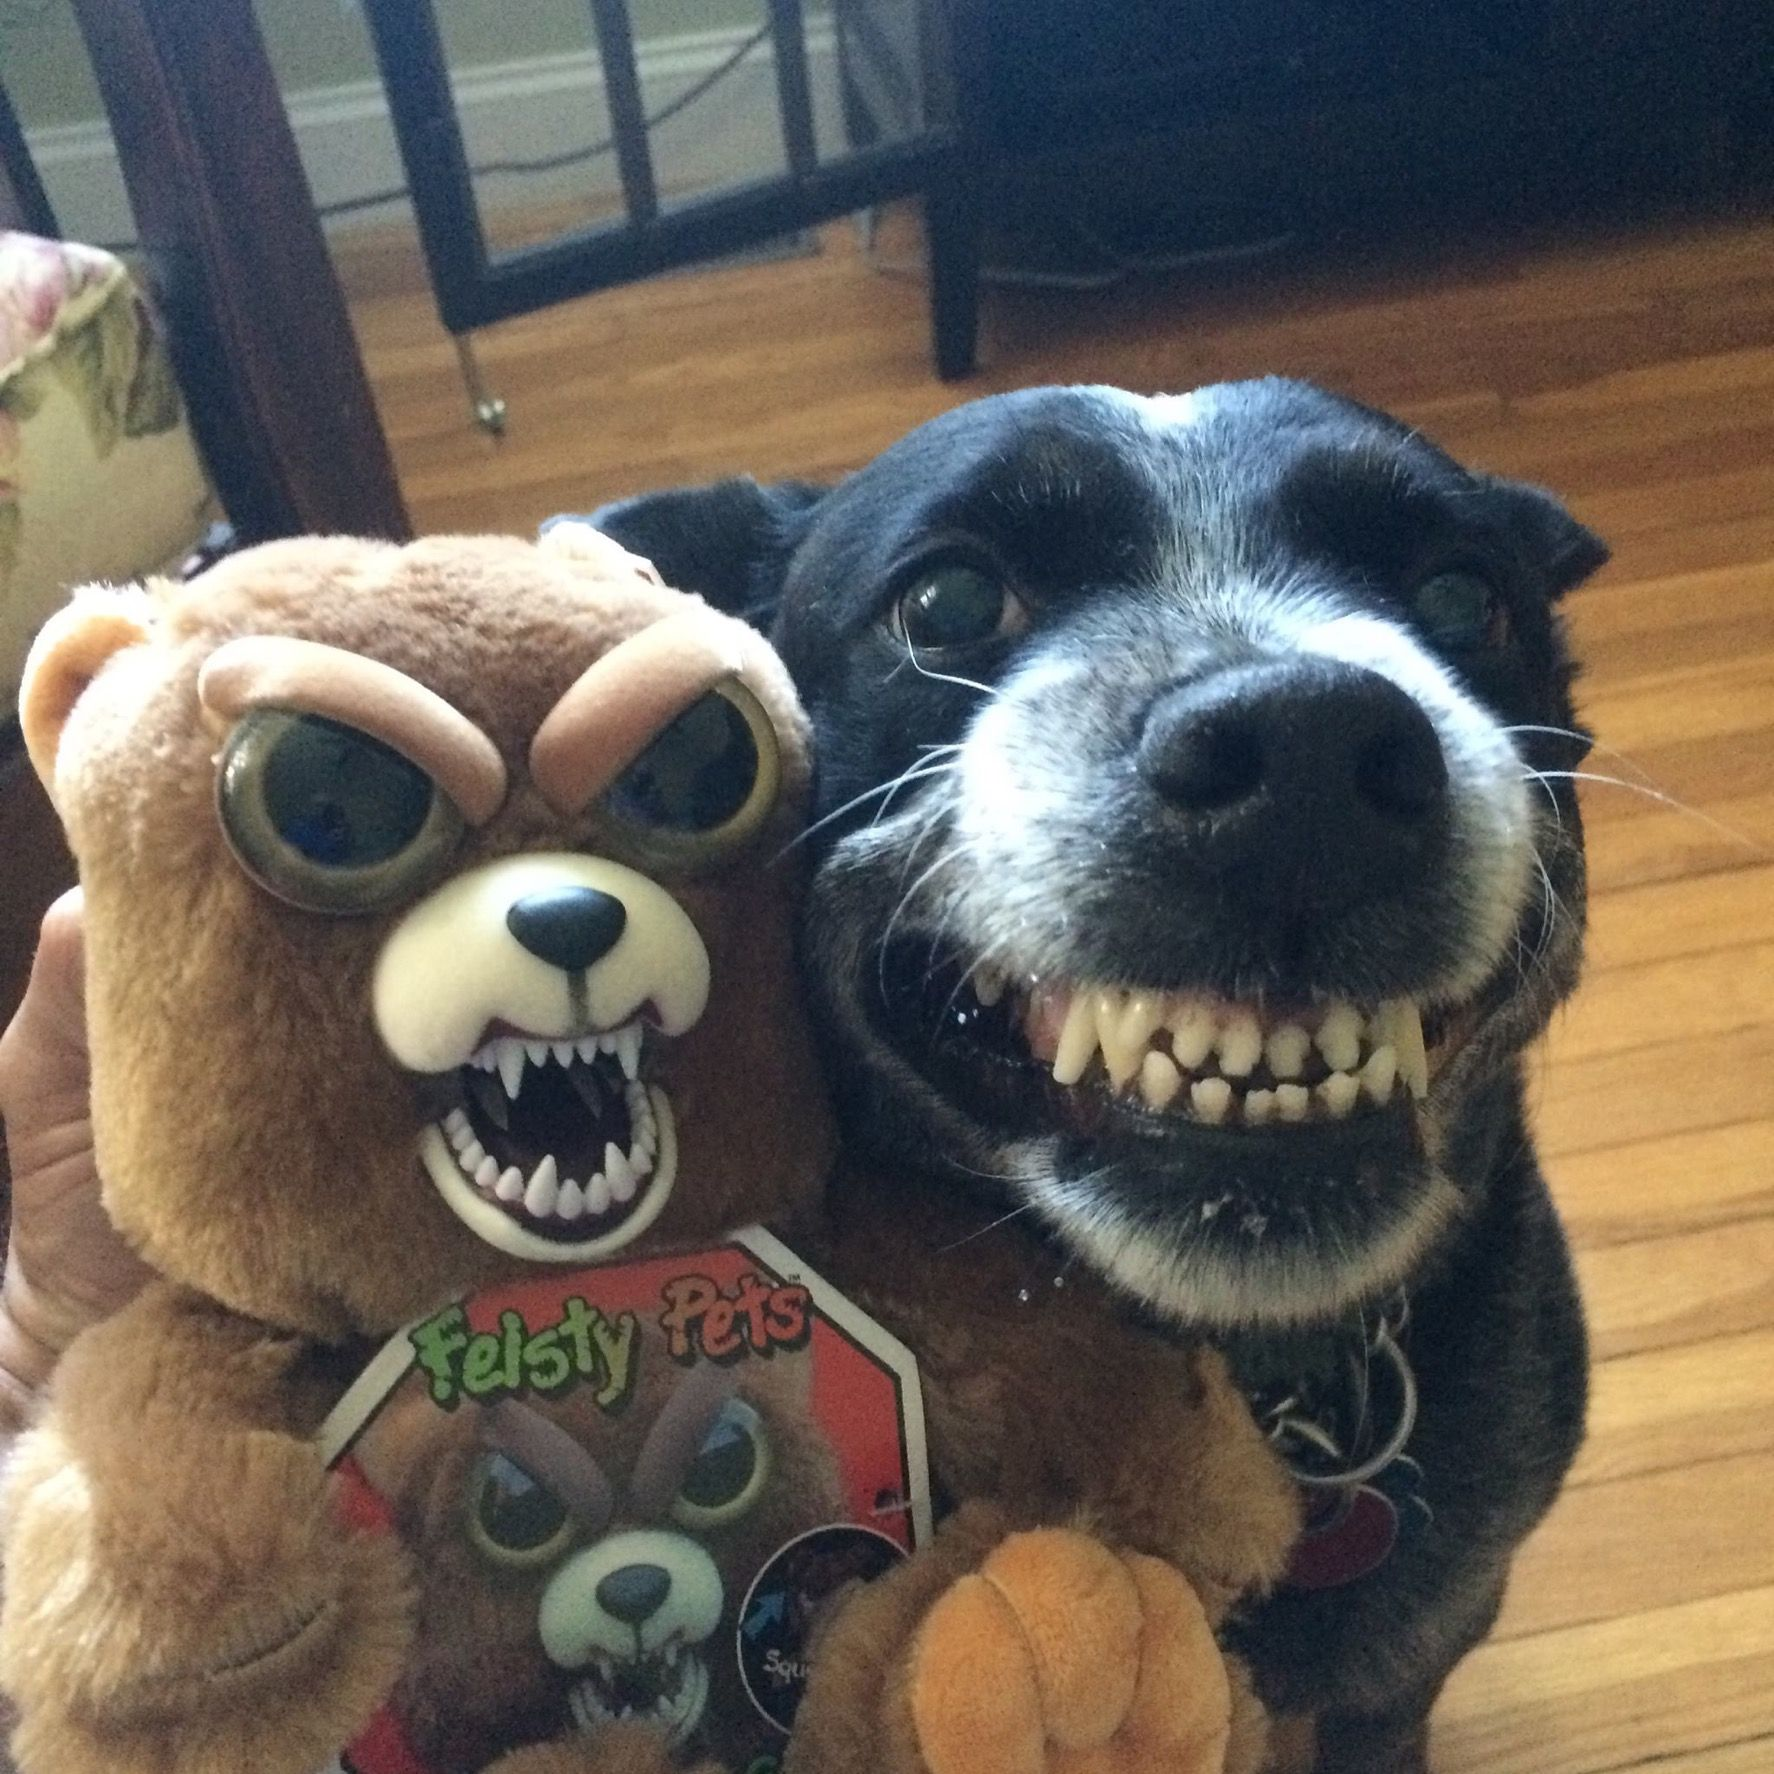 Feisty Pets Love This Dog S Smile Follow Rushworld On Pinterest New Content Daily Always Something You Ll Love Cute Dogs Funny Animals Cute Animals